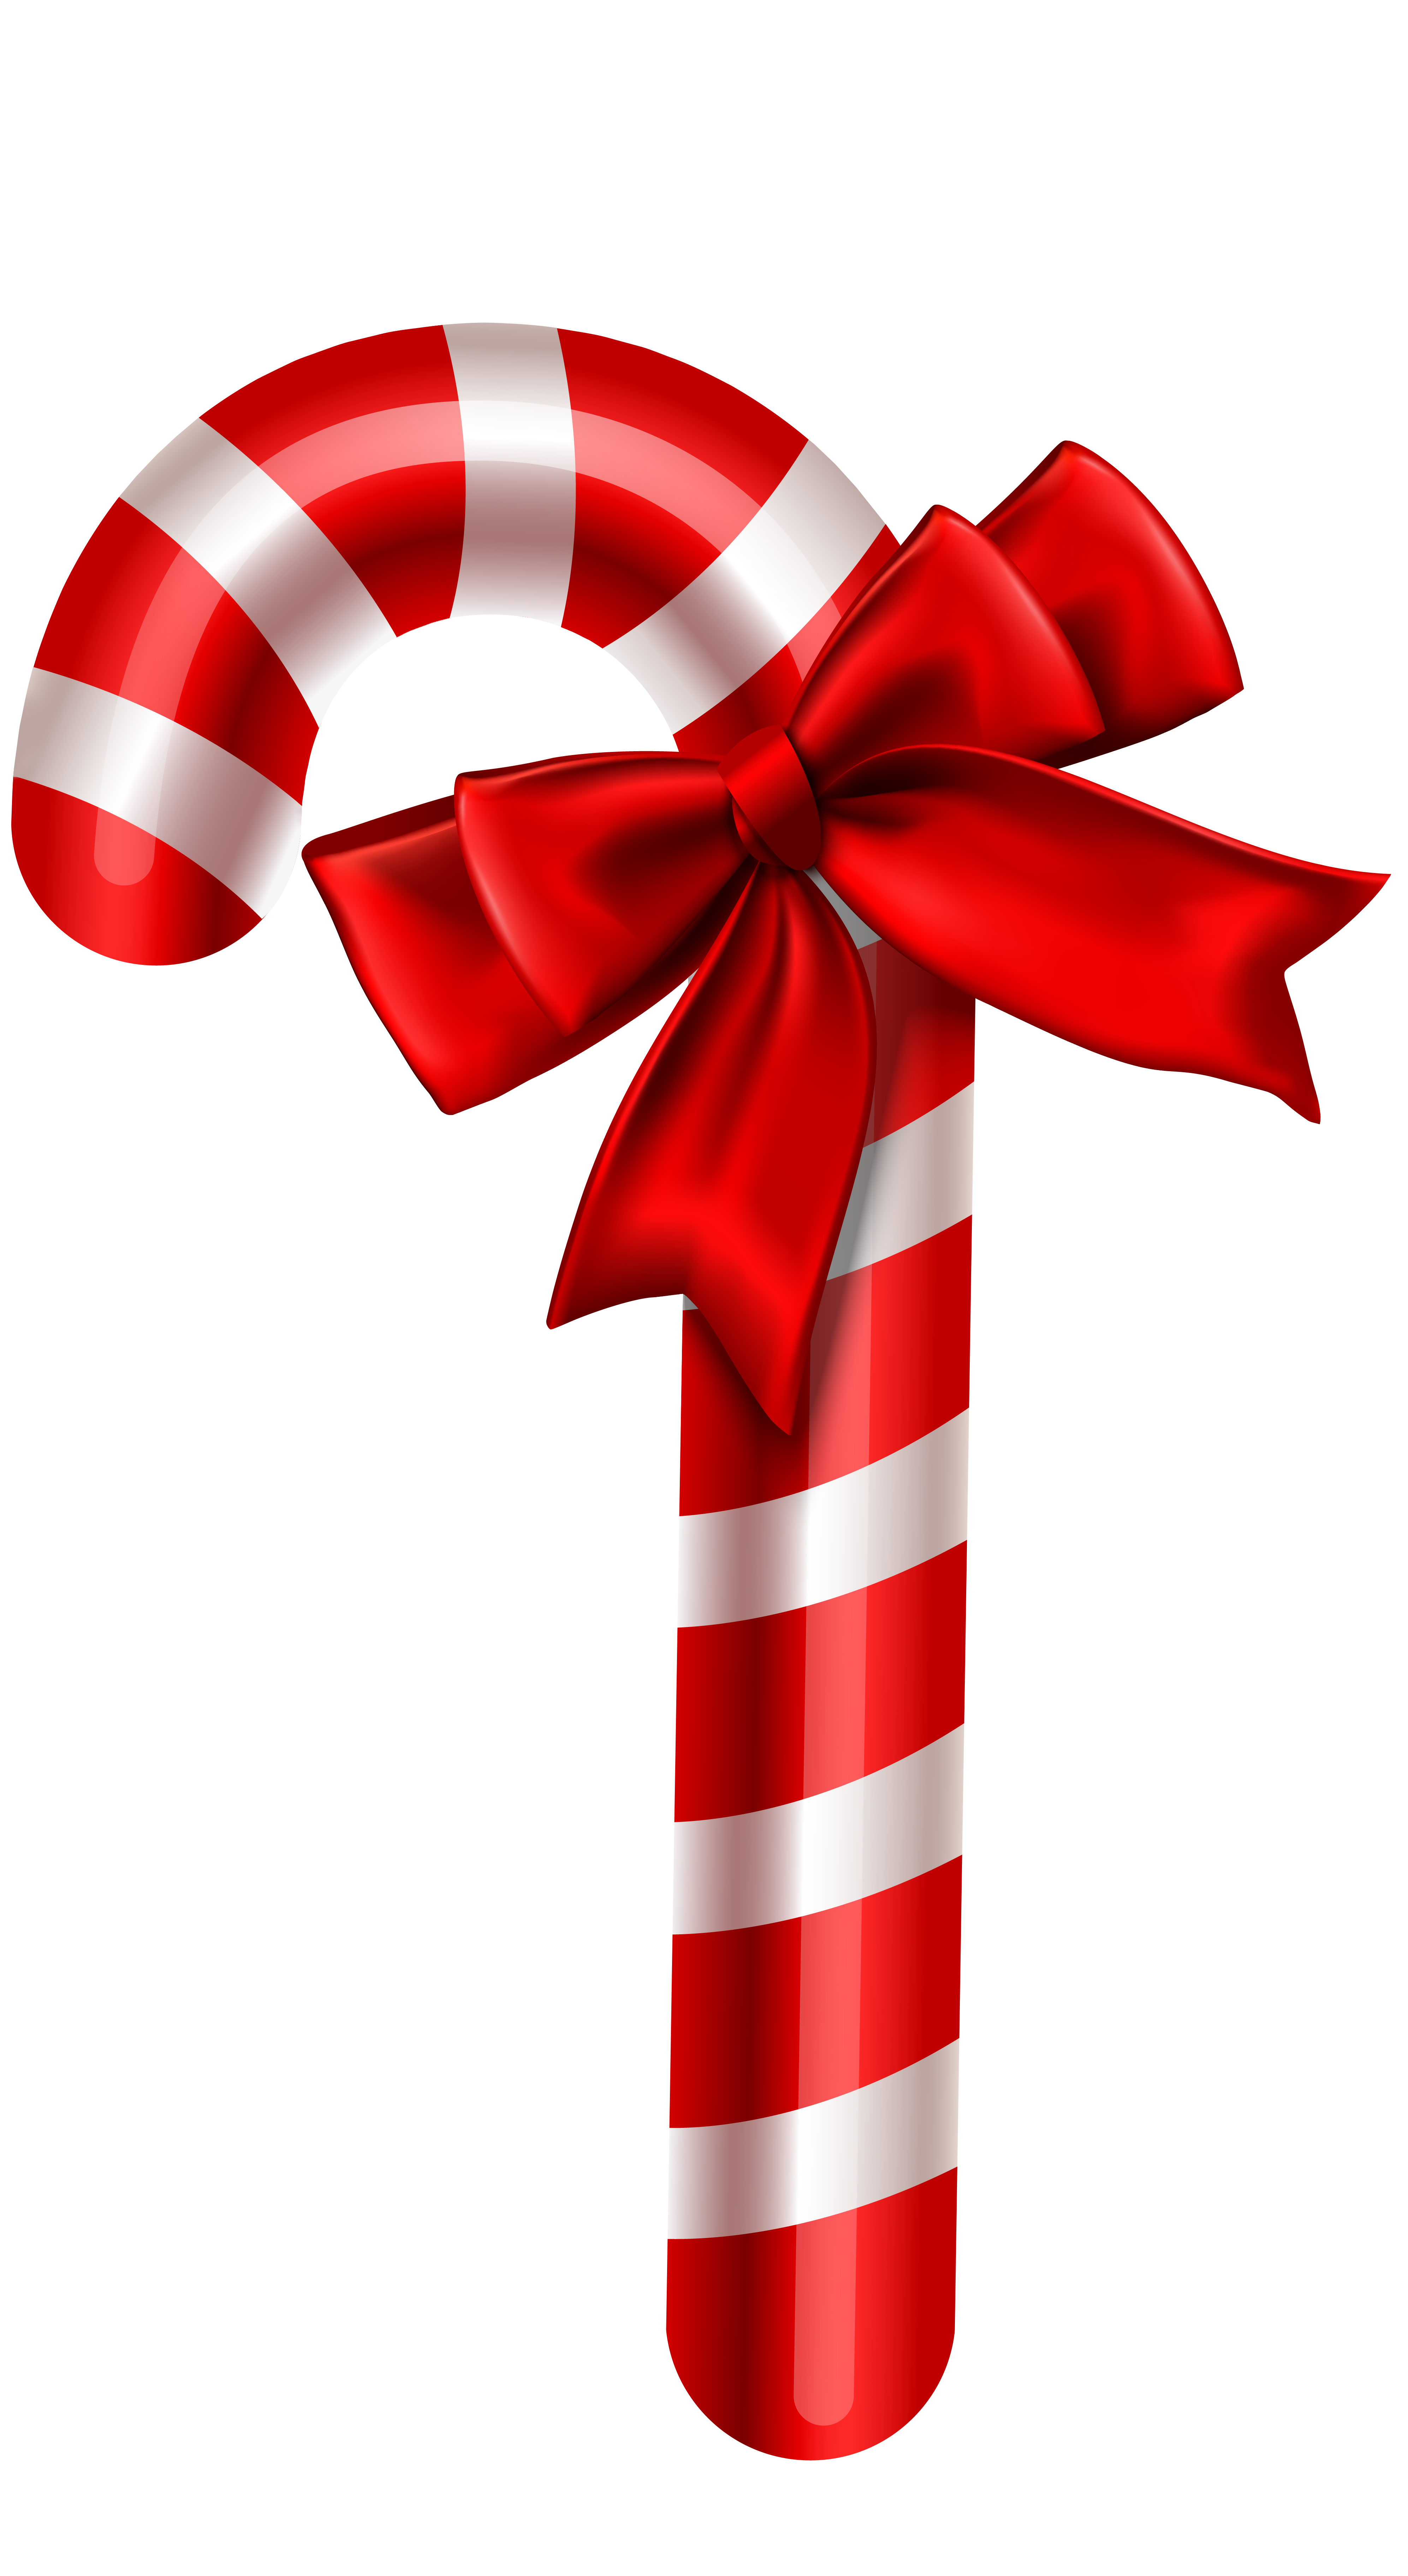 Christmas Candy PNG Image Christmas candy cane